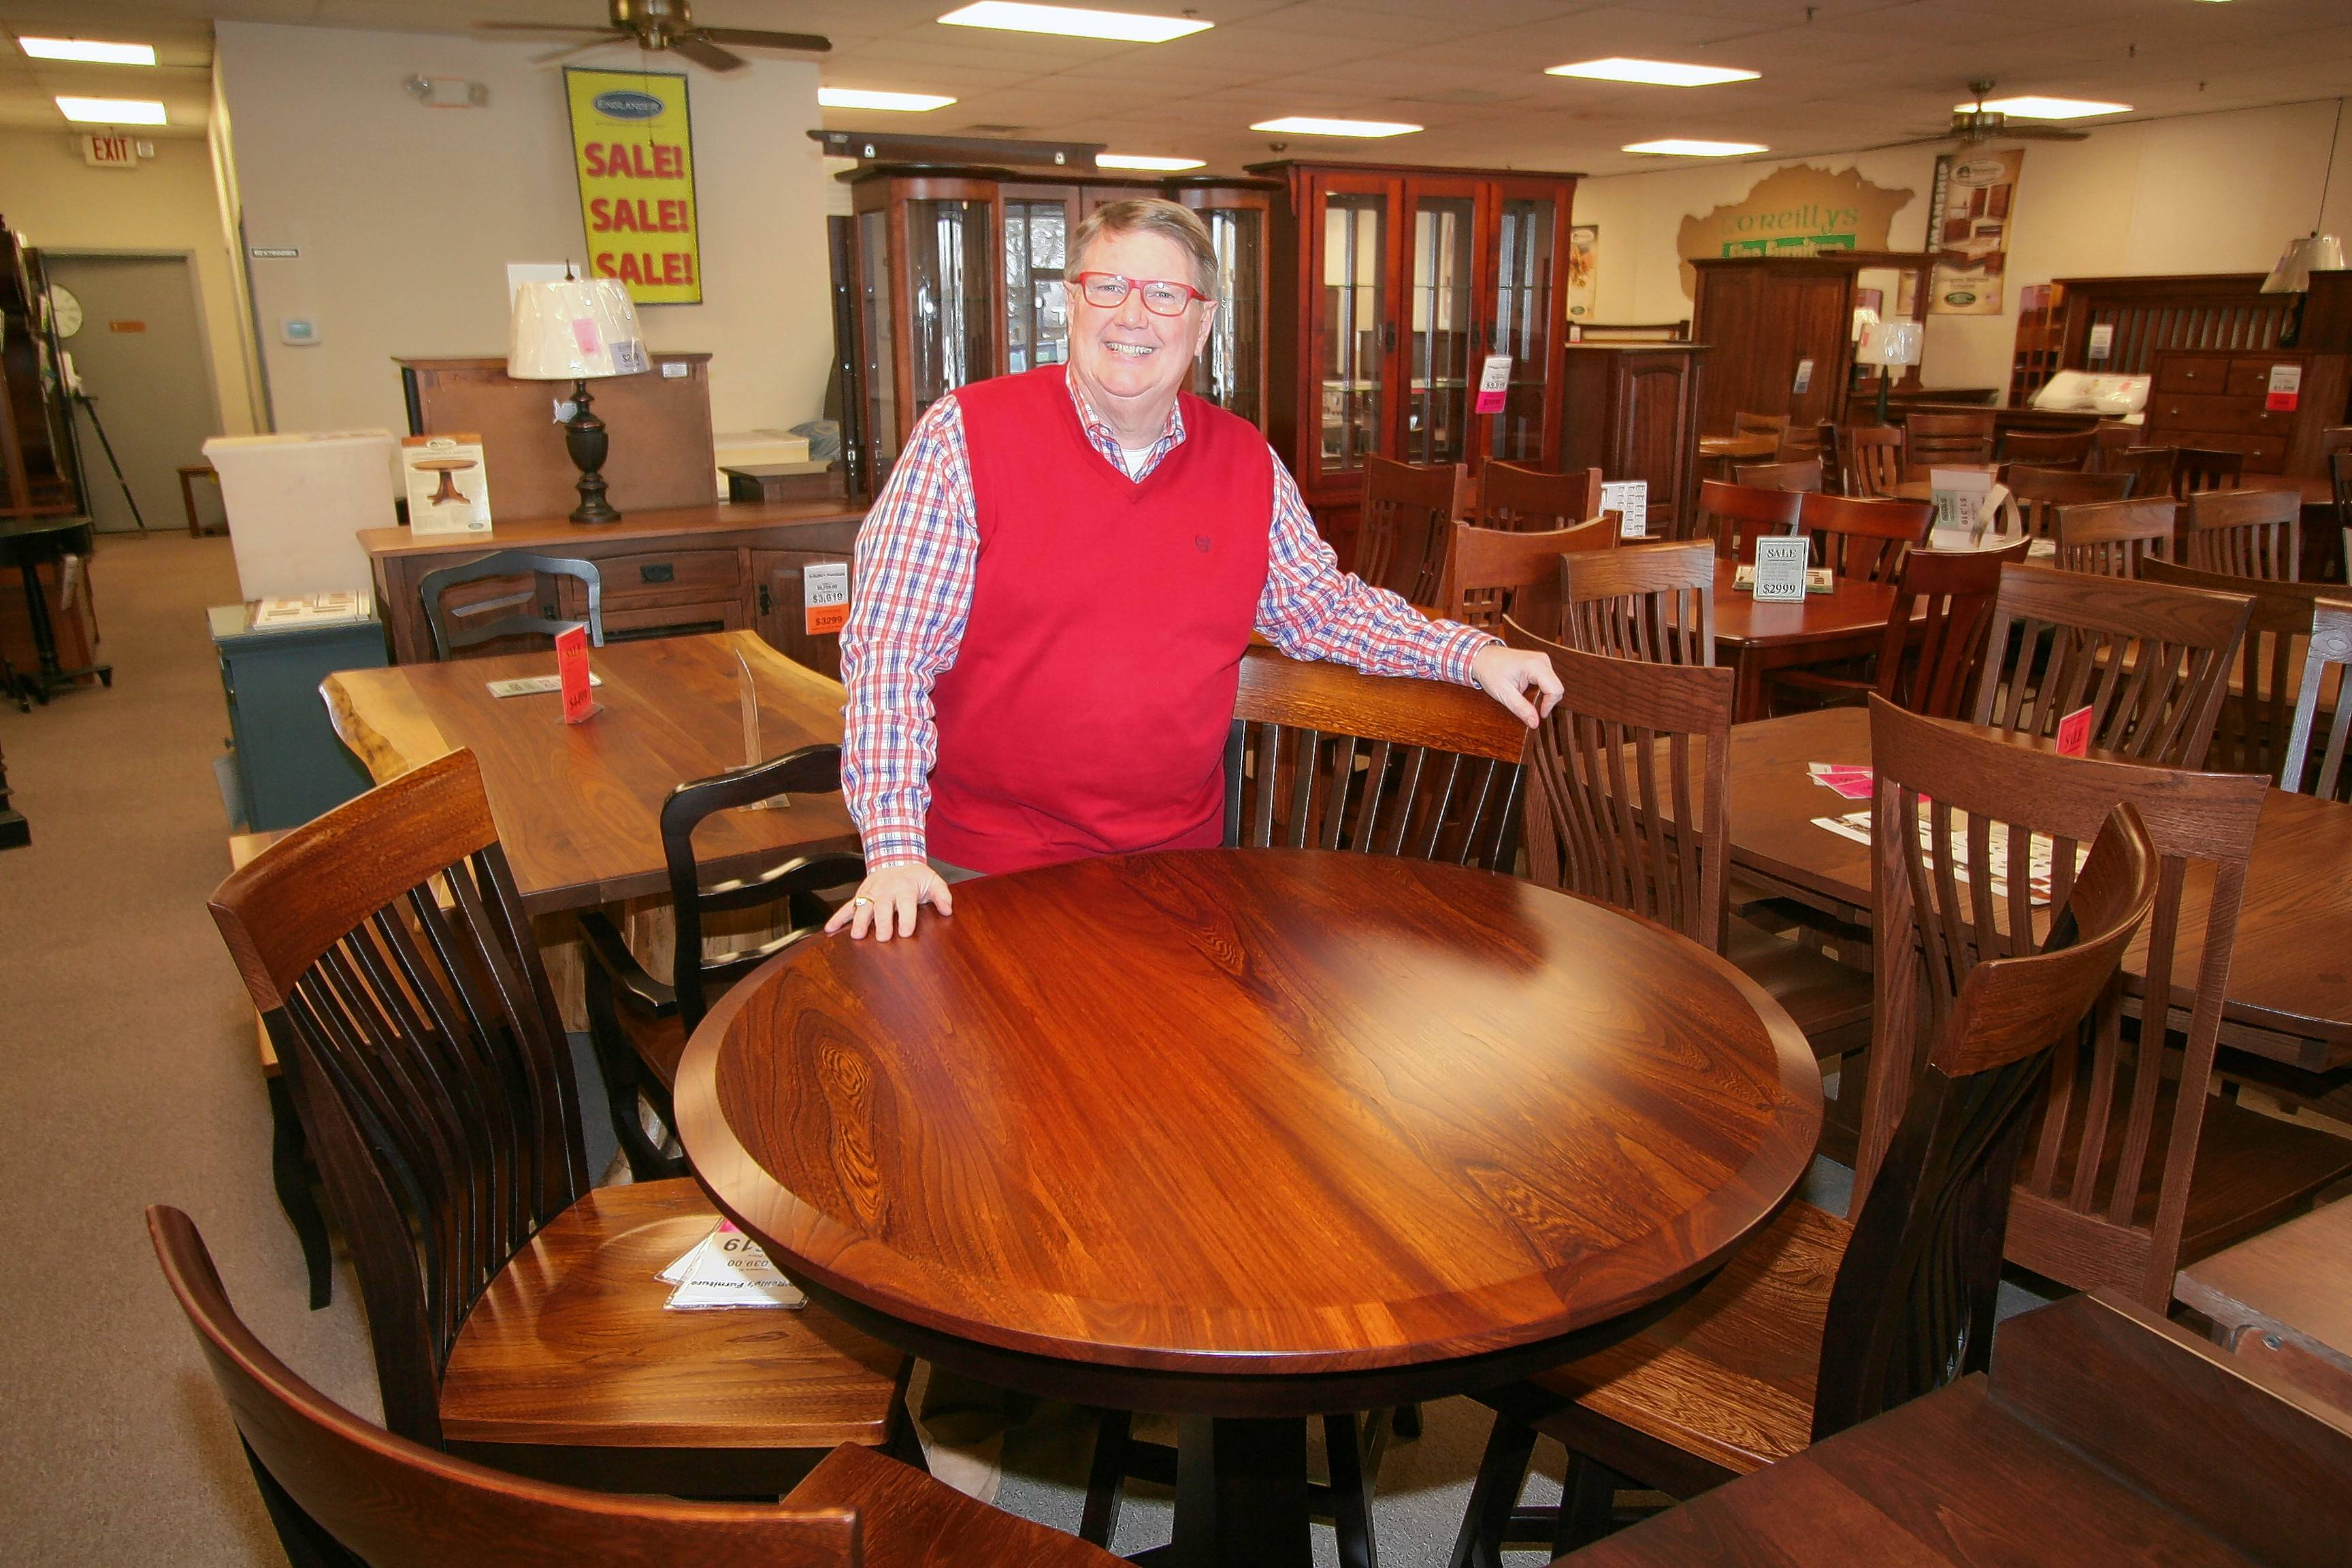 Gary Ou0027Reilly, Owner Of Ou0027Reillyu0027s Furniture In Libertyville, Made The